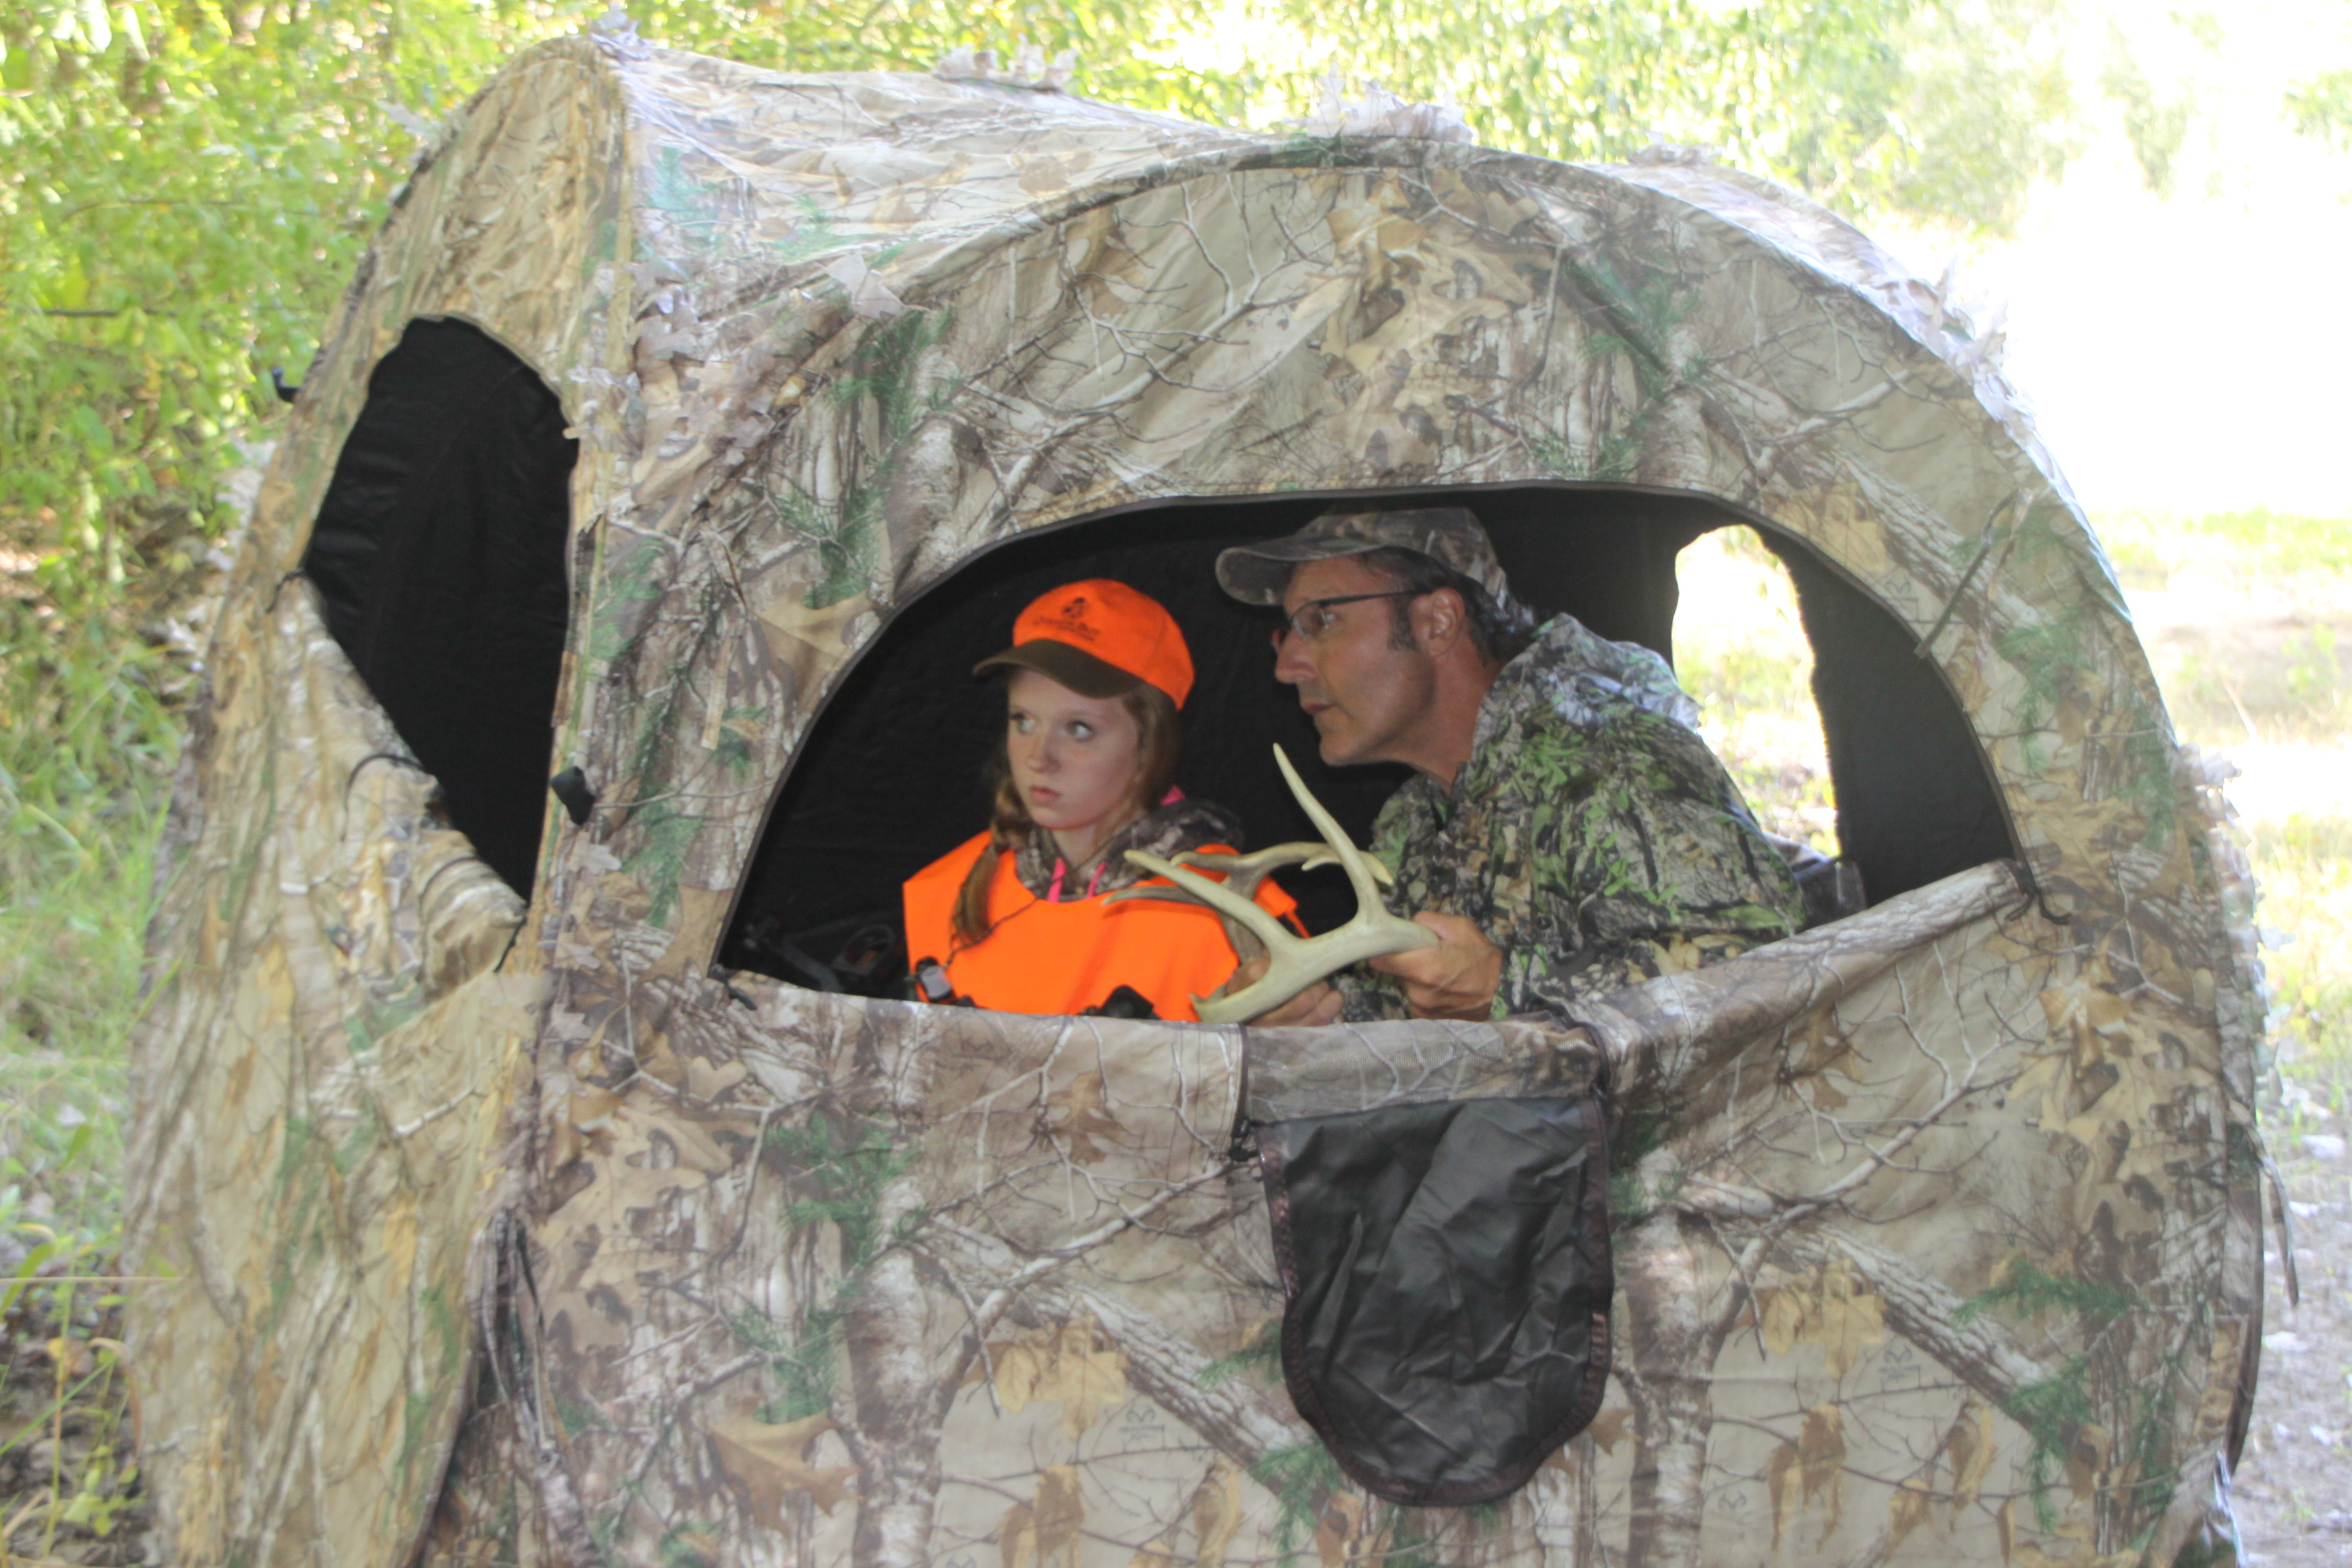 Arnie Jonathan of Lockport shows Emily Eaton of Newfane how to try and call a deer into range from their portable blind.